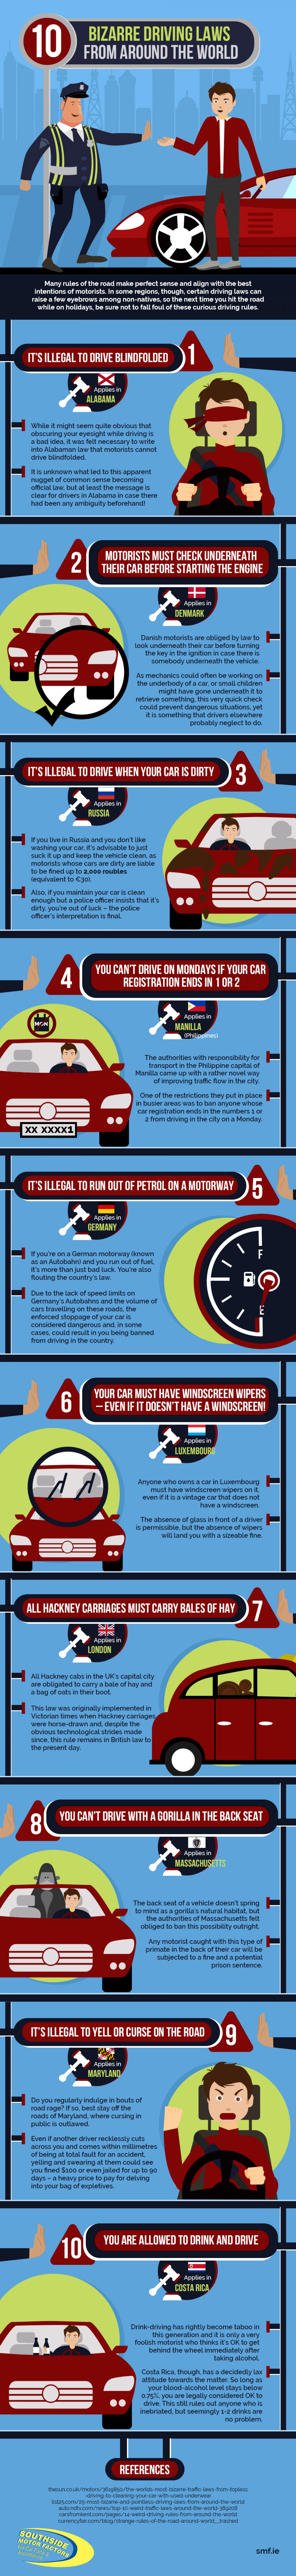 The strangest traffic rules of the world